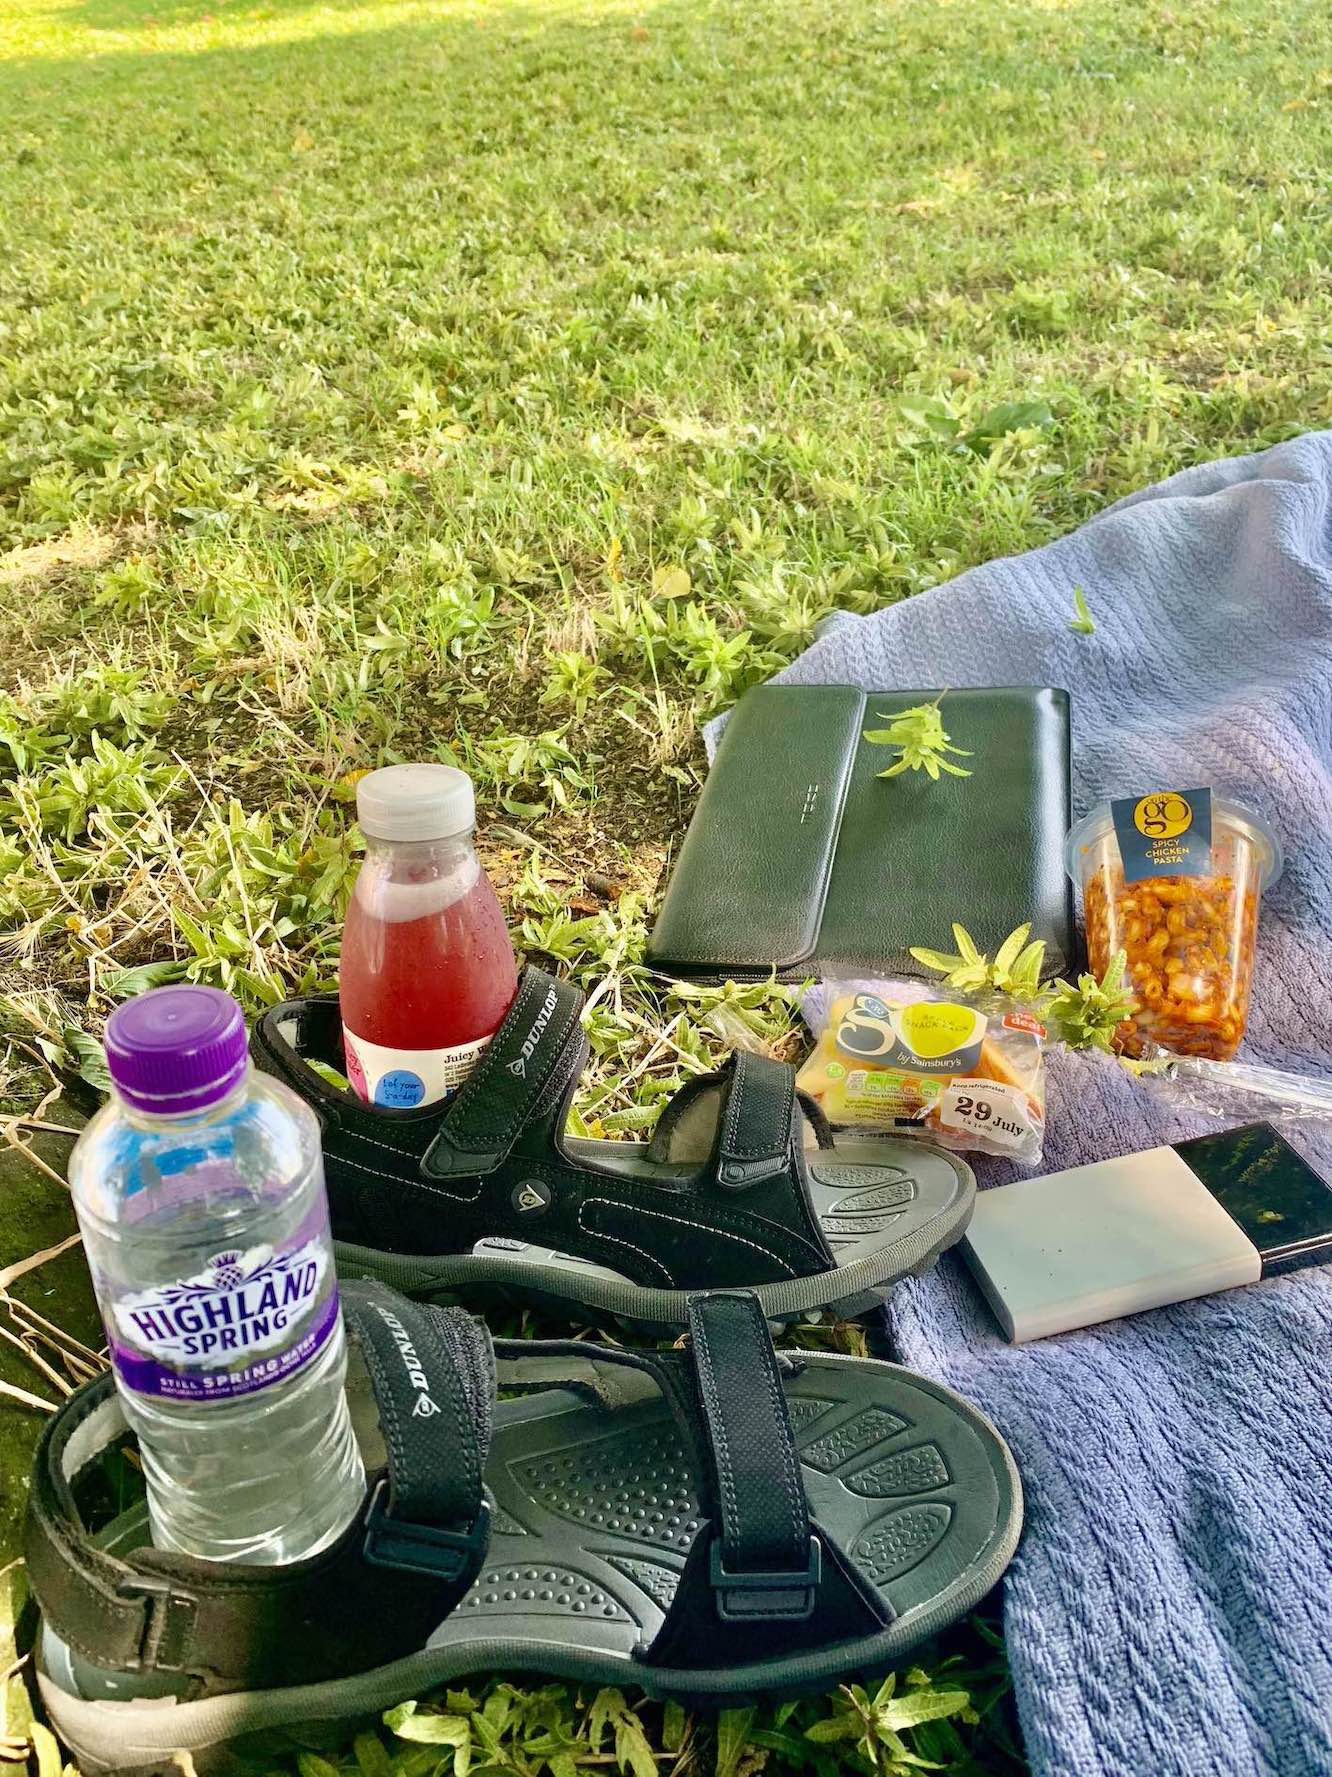 A picnic on Tooting Bec Common.